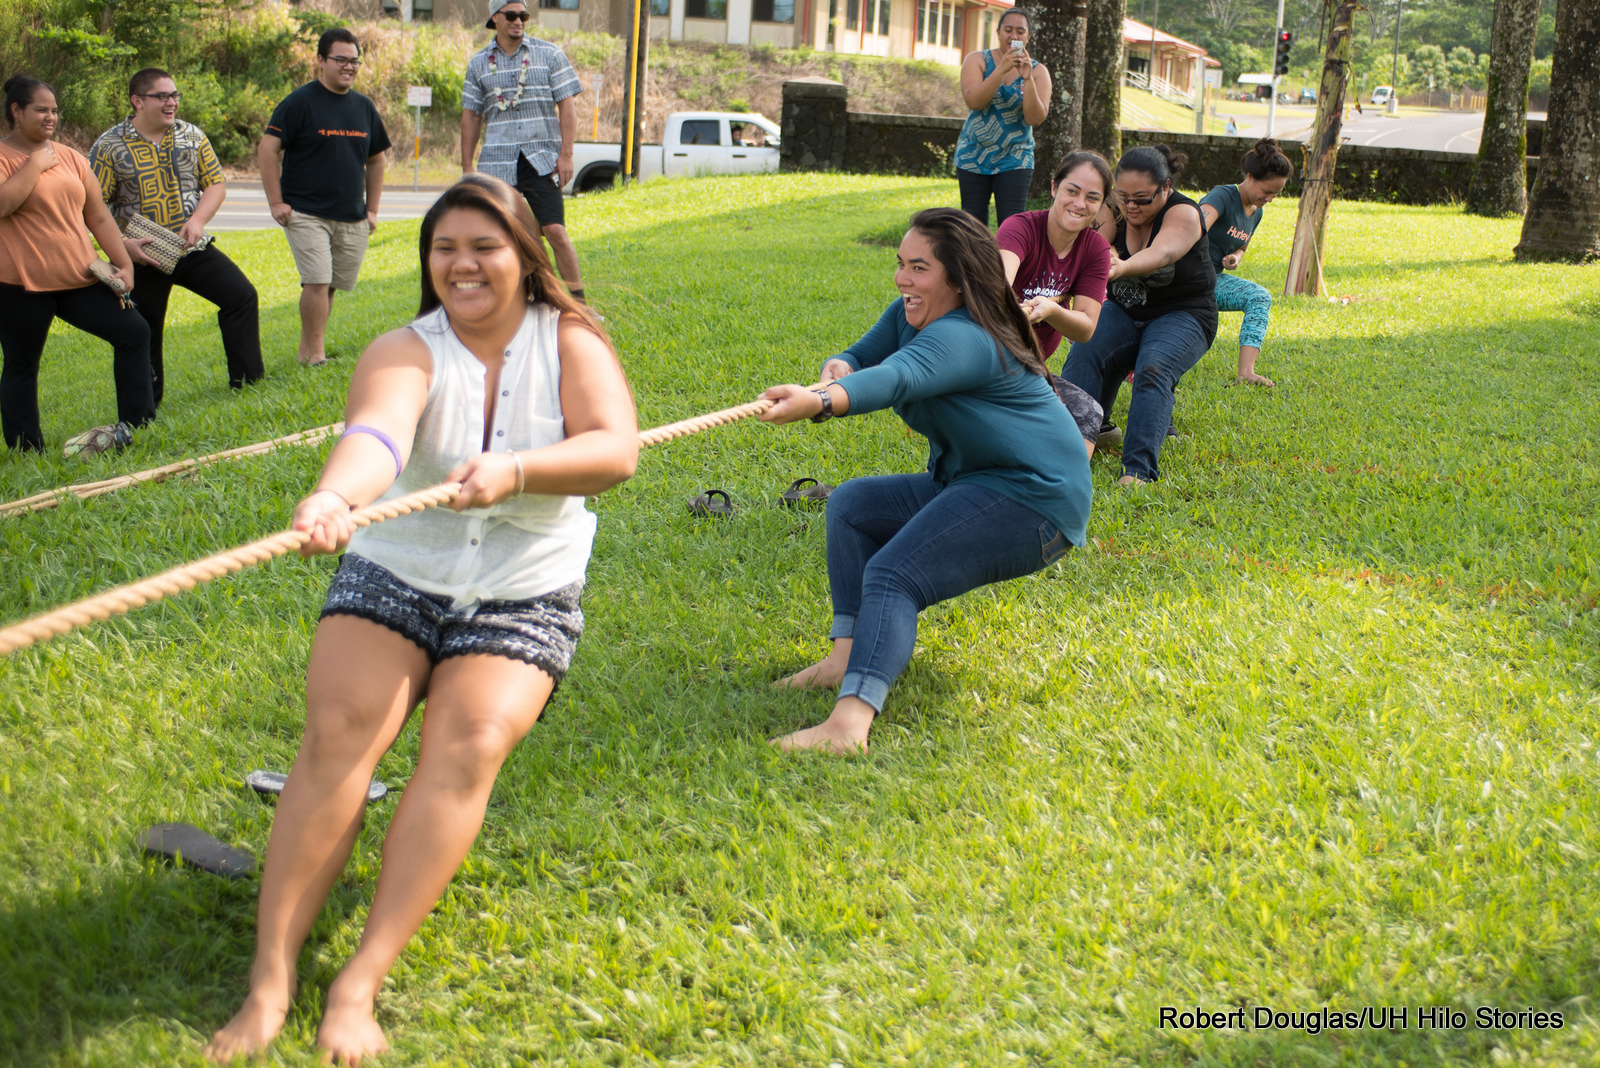 Hukihuki, Hawaiian Tug of War. Opponents pull on opposite ends of a long rope. The game ends when one team gets pulled to the other's side.